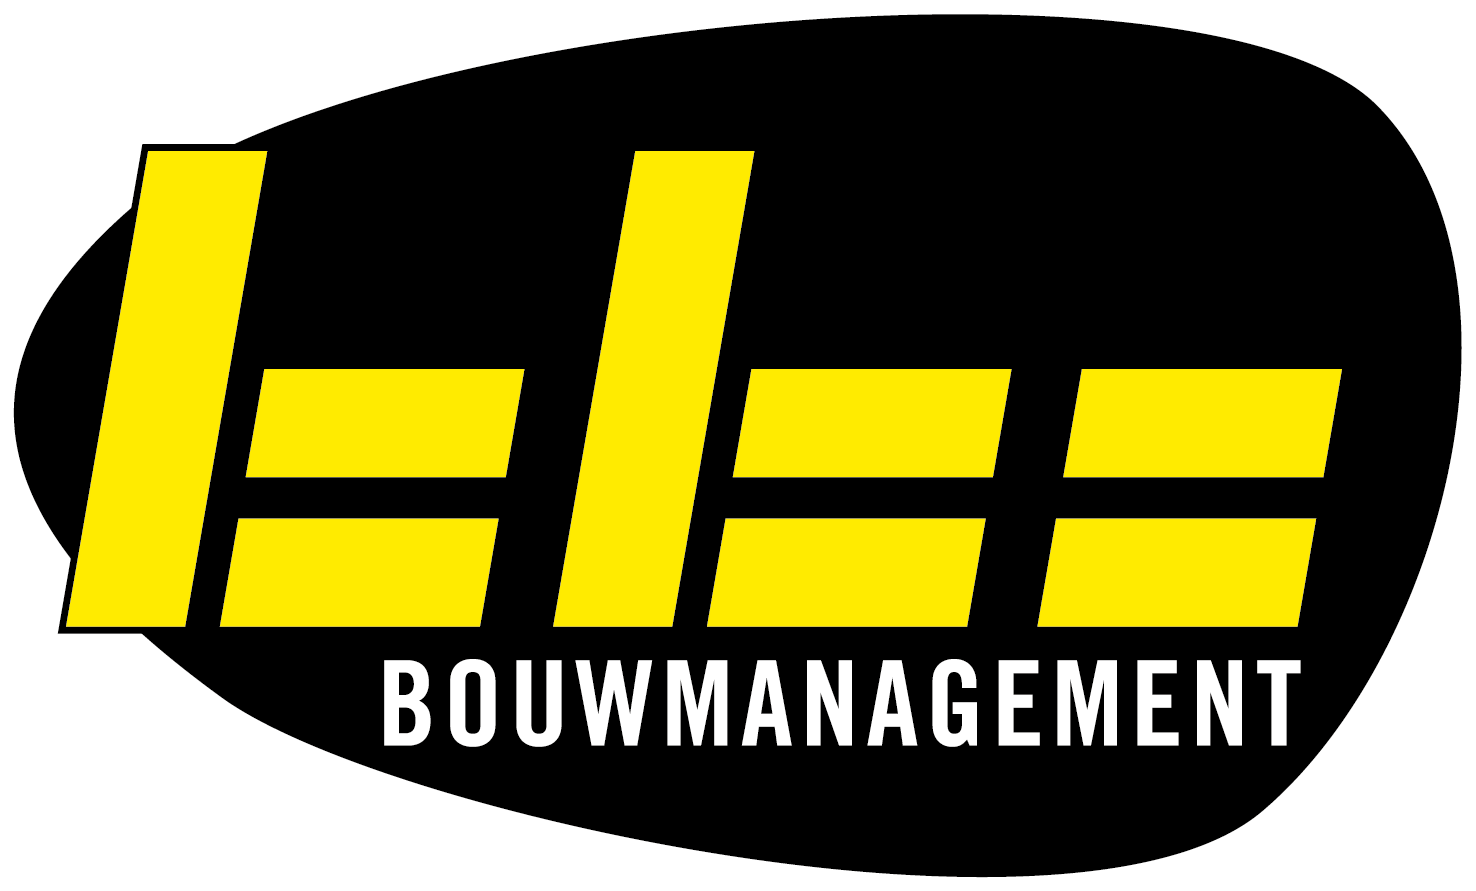 BBC Bouwmanagement